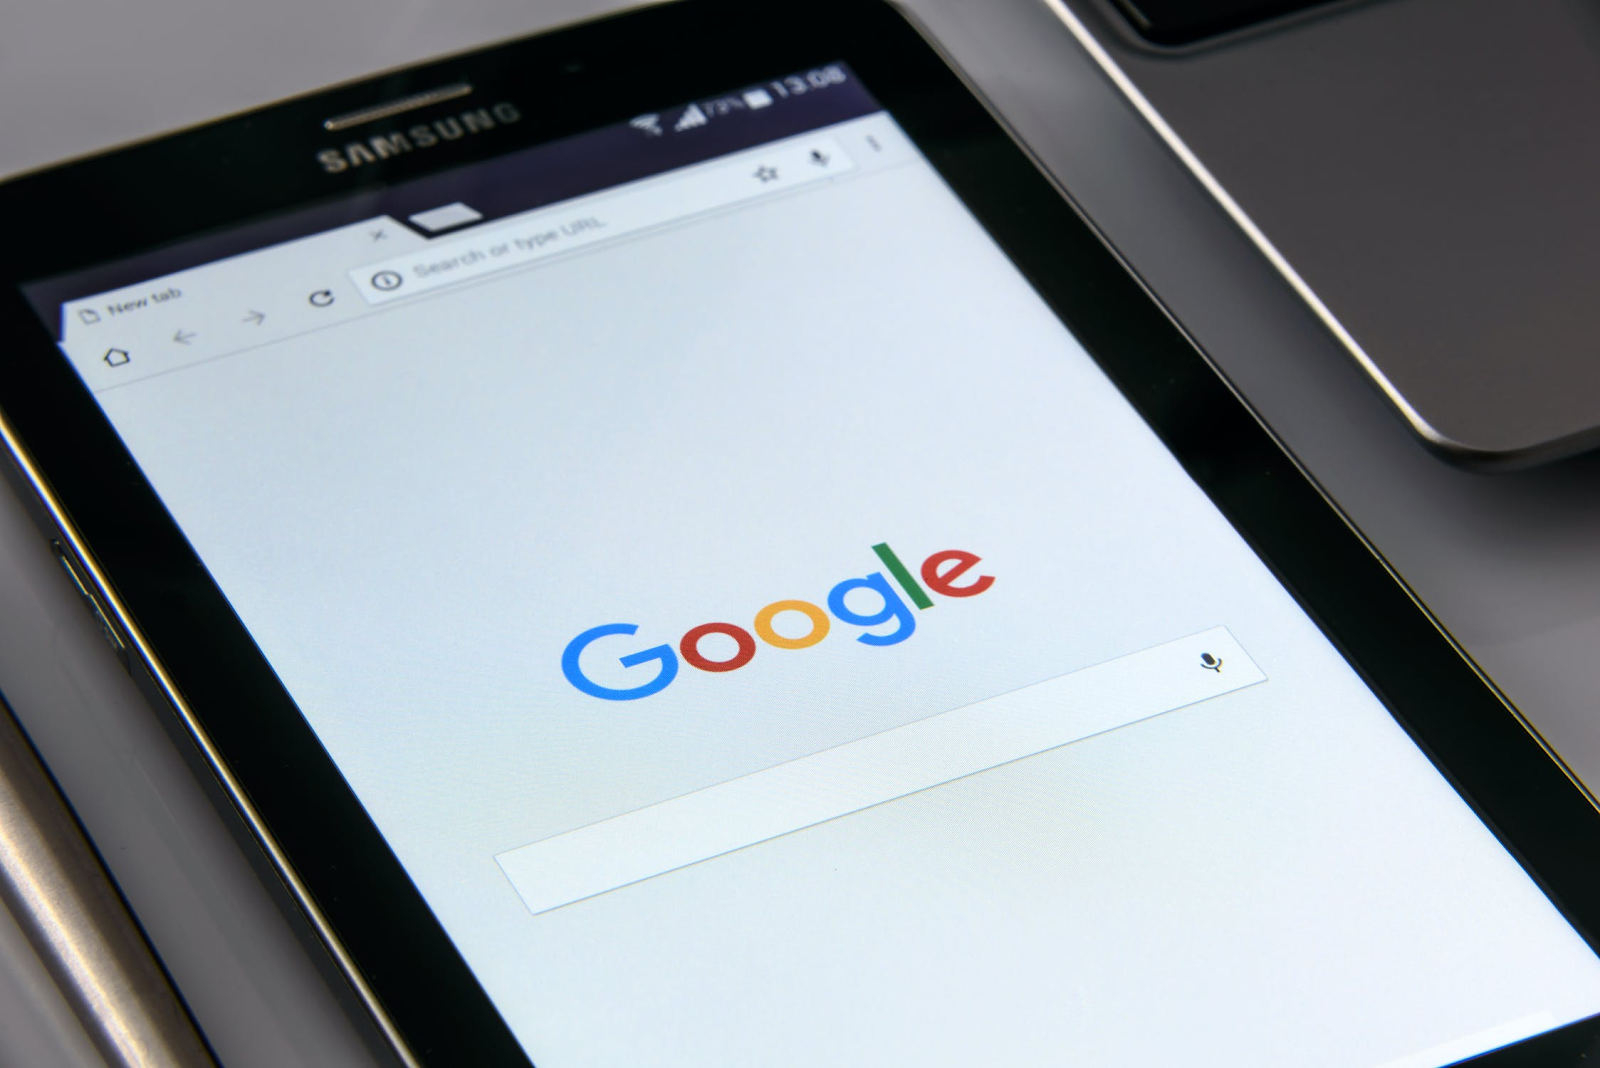 SEO (Search Engine Optimization) Best Practices to Nail Your Blog Marketing Efforts - Image of Phone with Google Open